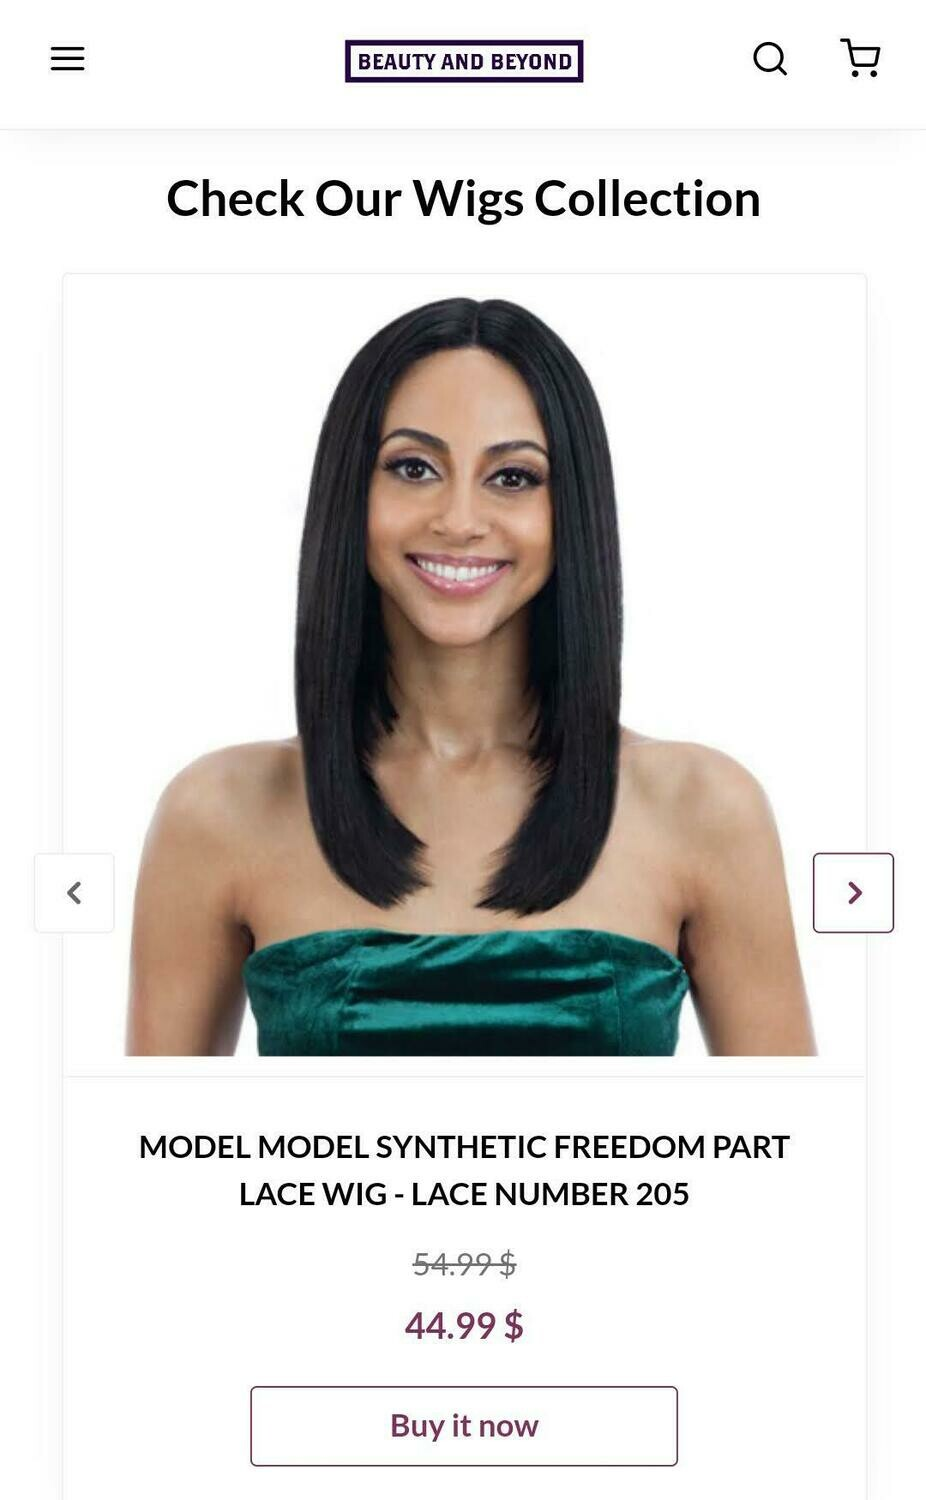 Model Model Synthetic Freedom Part Lace Wig- Lace Number 205